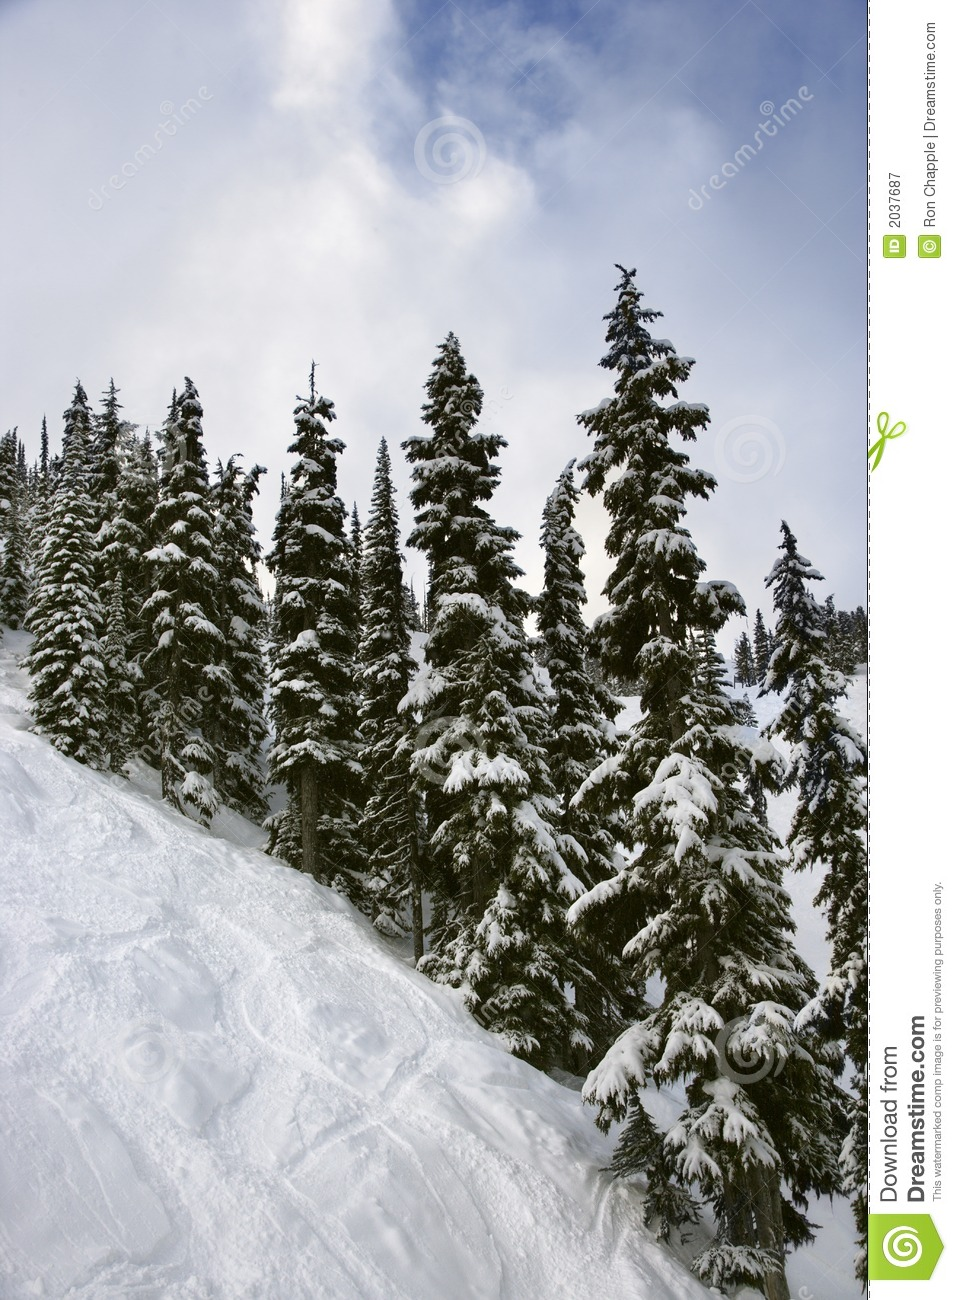 Snow Covered Pine Trees Clip Art Snow-covered pine trees on